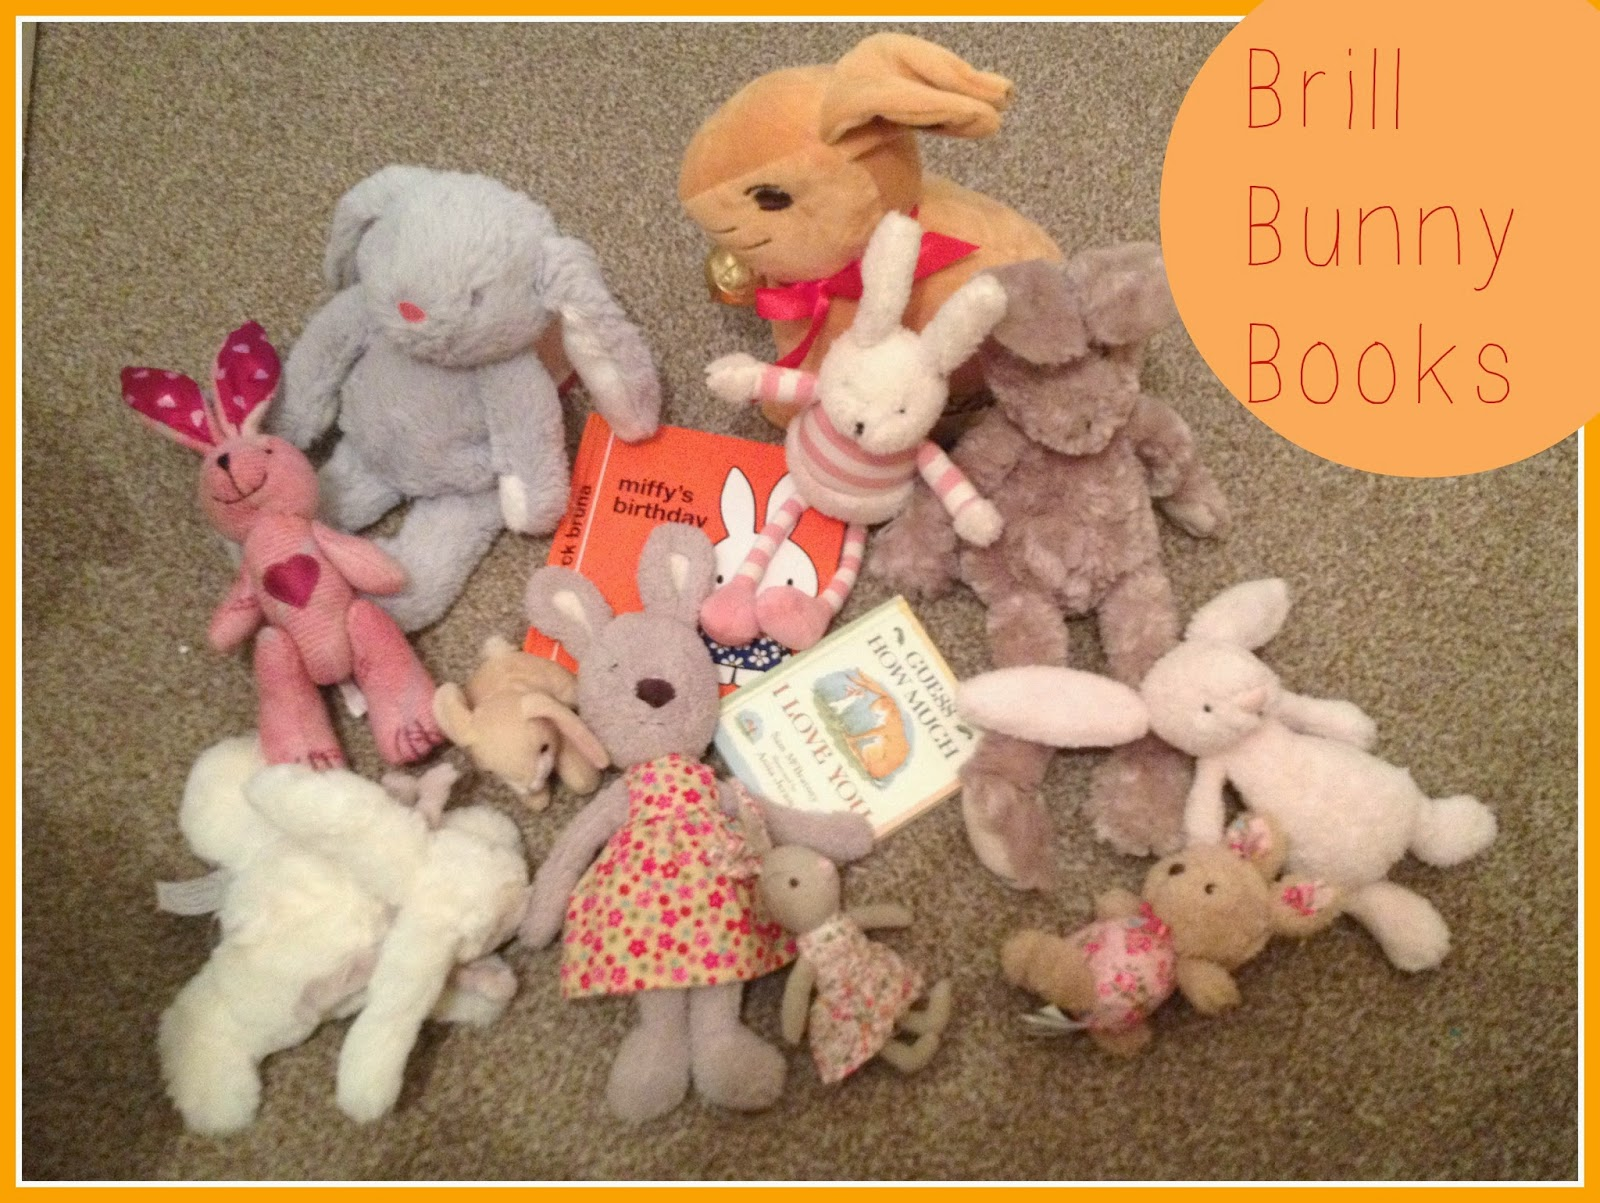 18 Beautiful Kids bunny books for Easter